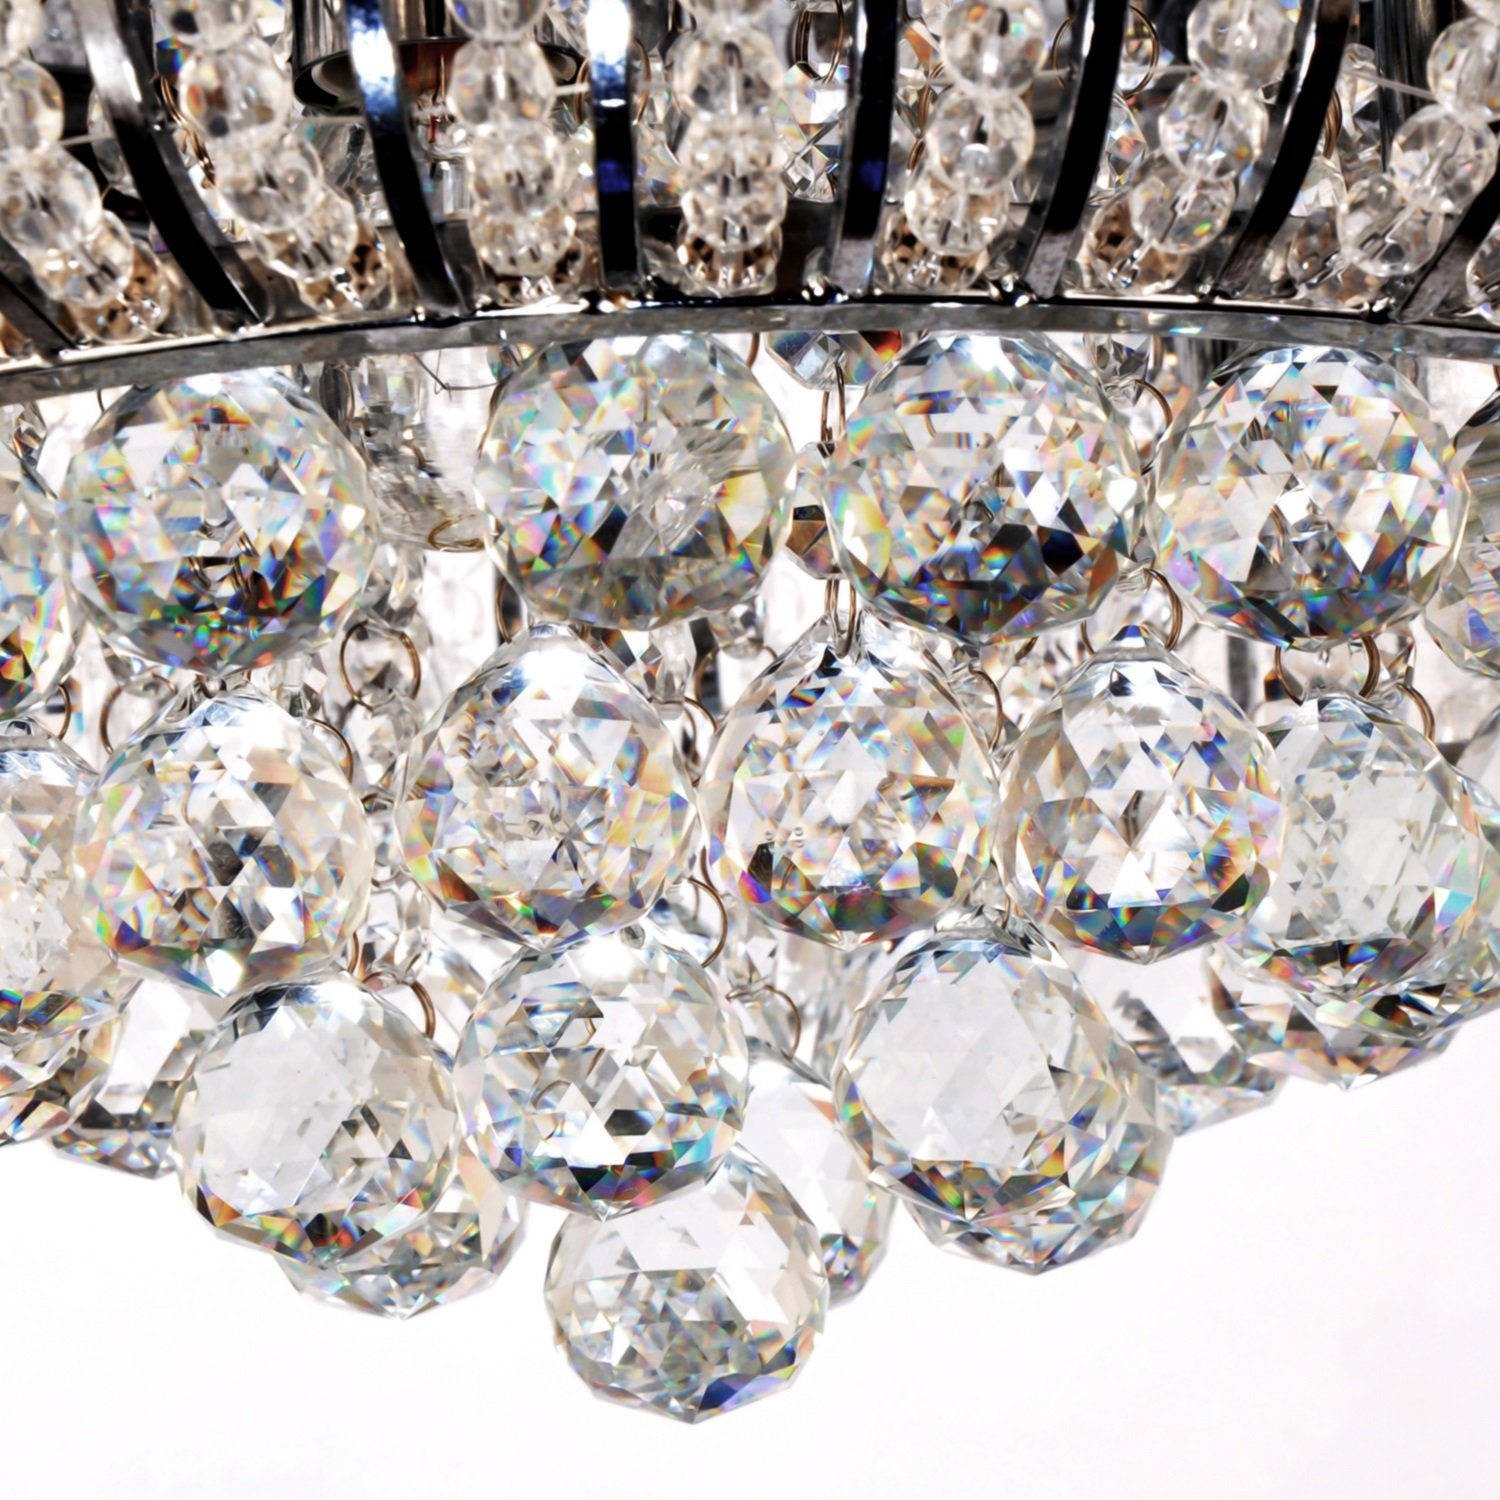 Oofay light simple and elegant crystal light 5 head crystal oofay light simple and elegant crystal light 5 head crystal ceiling light for living room modern bedroom crystal ceiling light amazon lighting arubaitofo Image collections